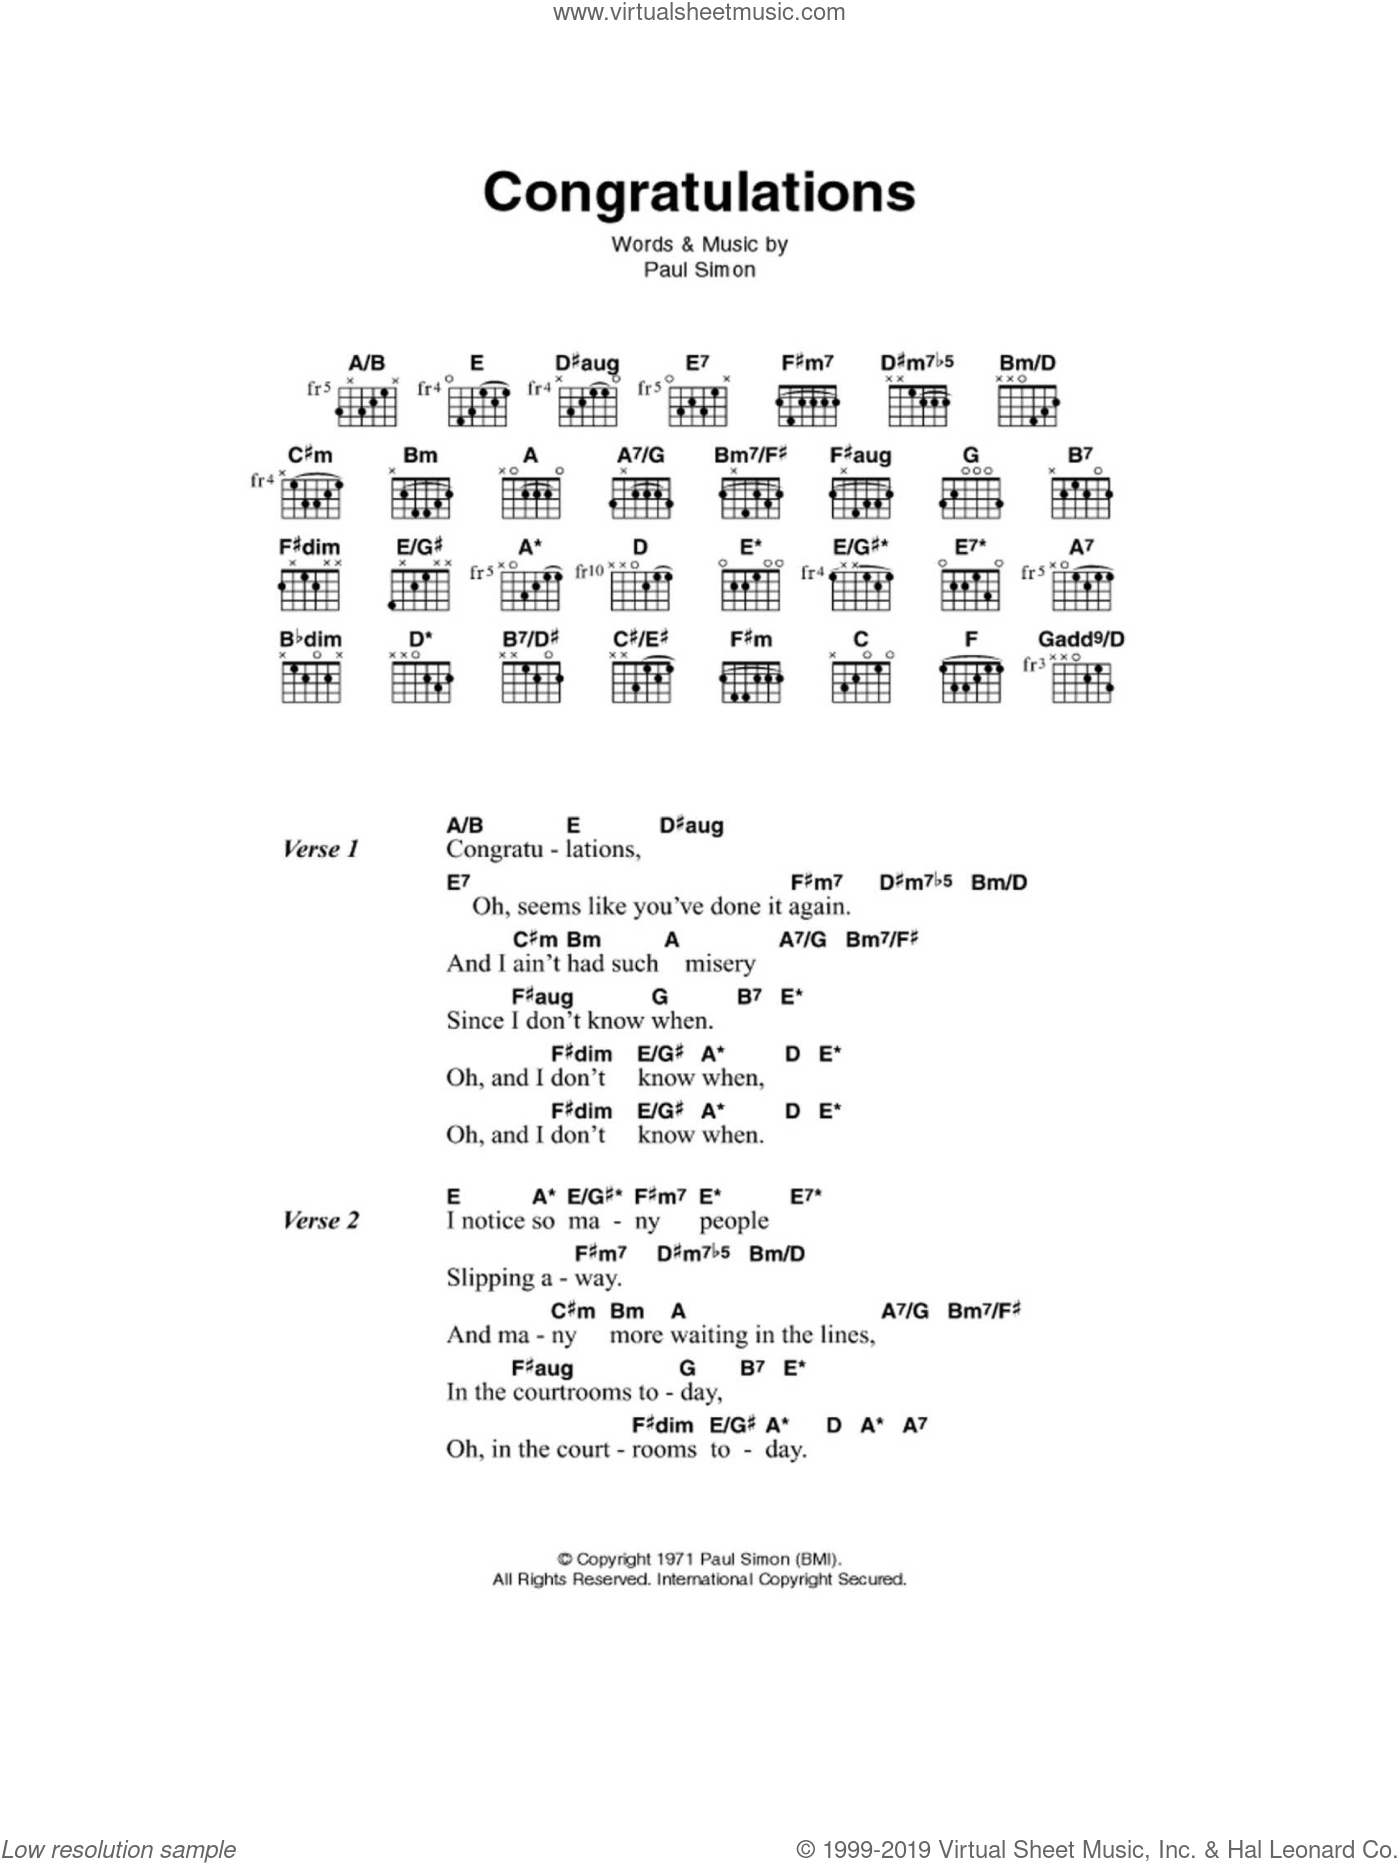 Simon - Congratulations sheet music for guitar (chords) [PDF]